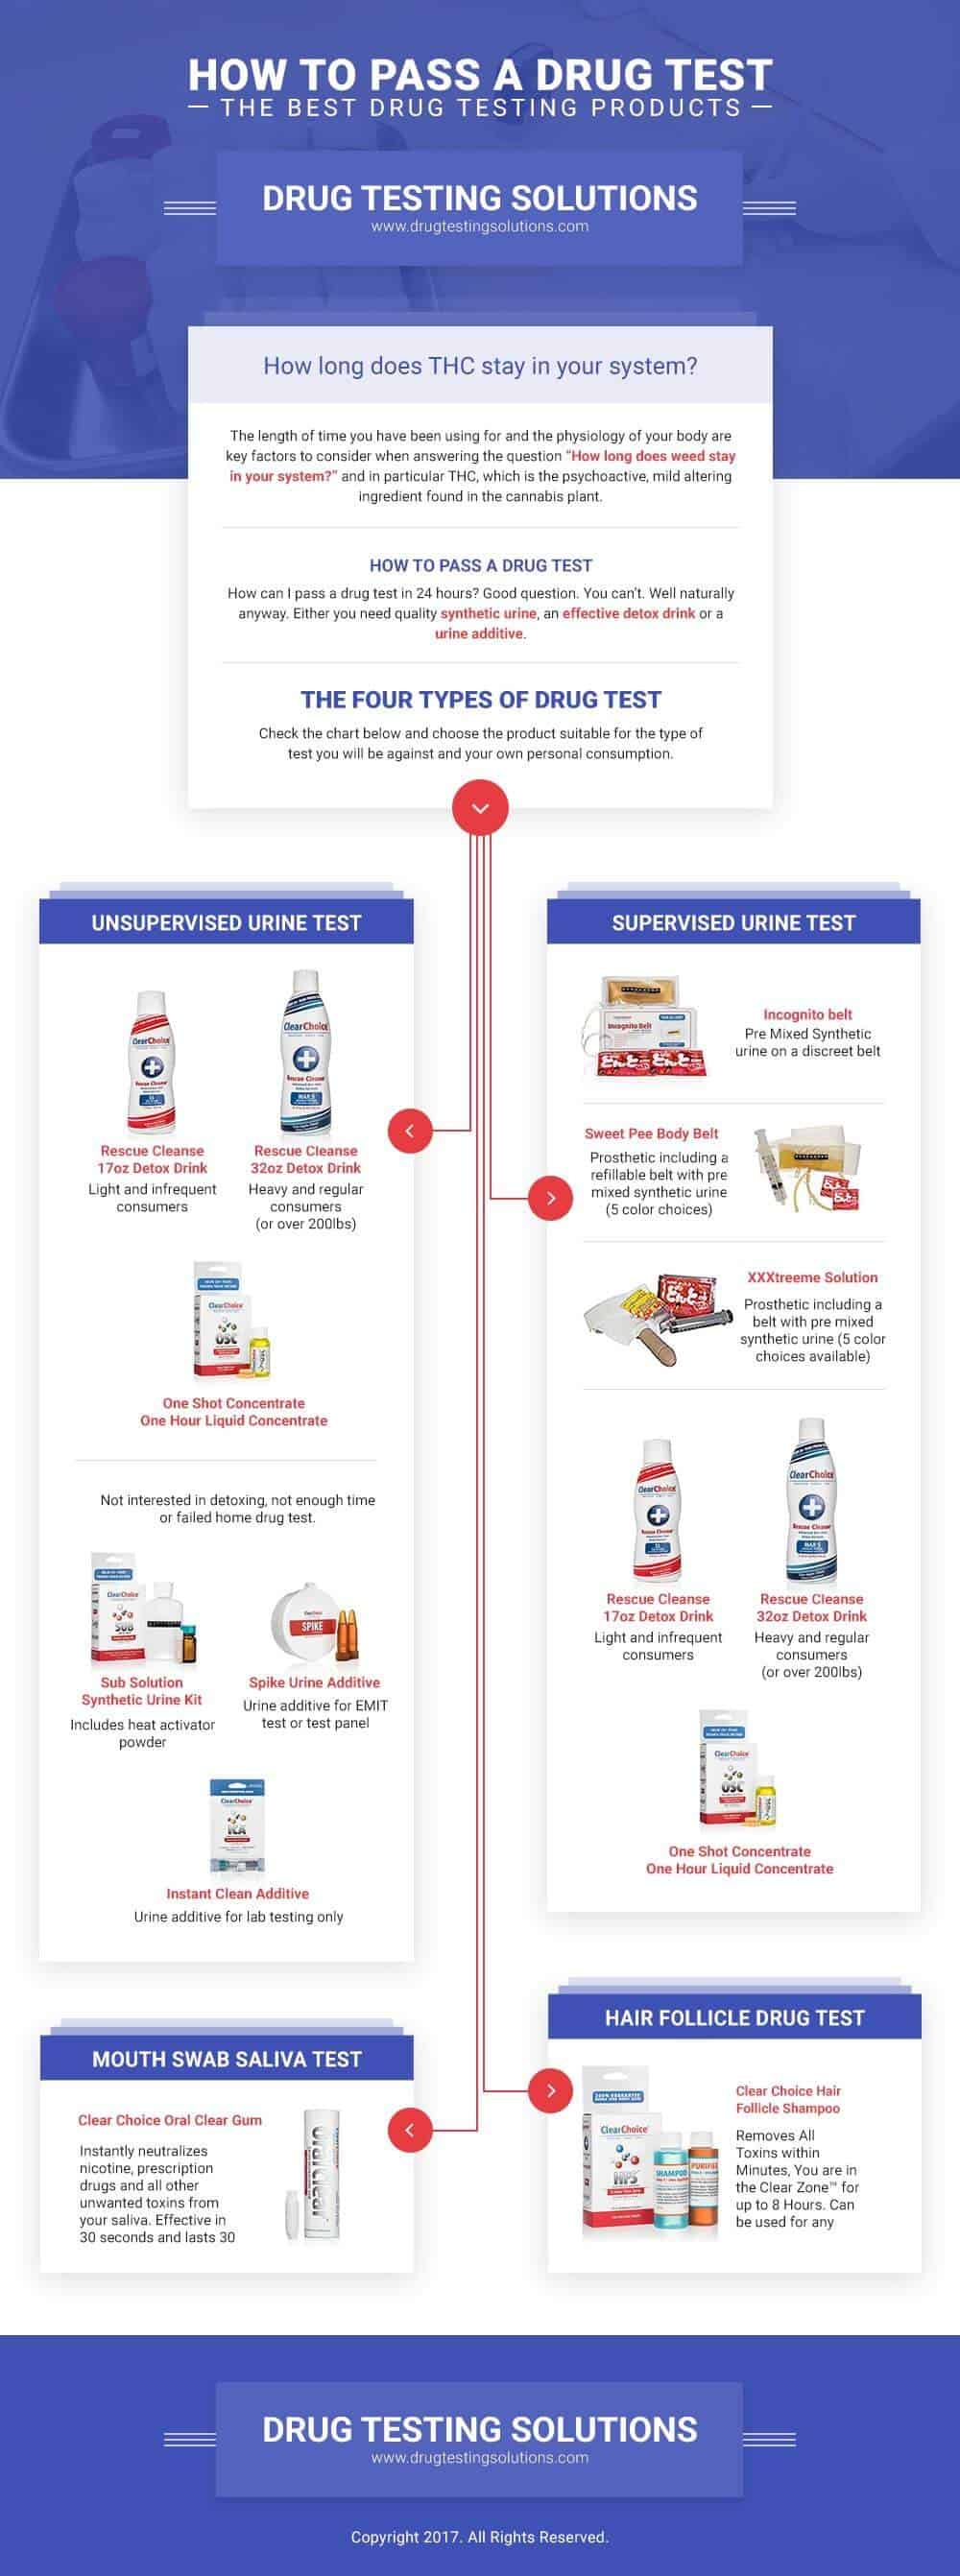 Drug Testing Solutions Infographic